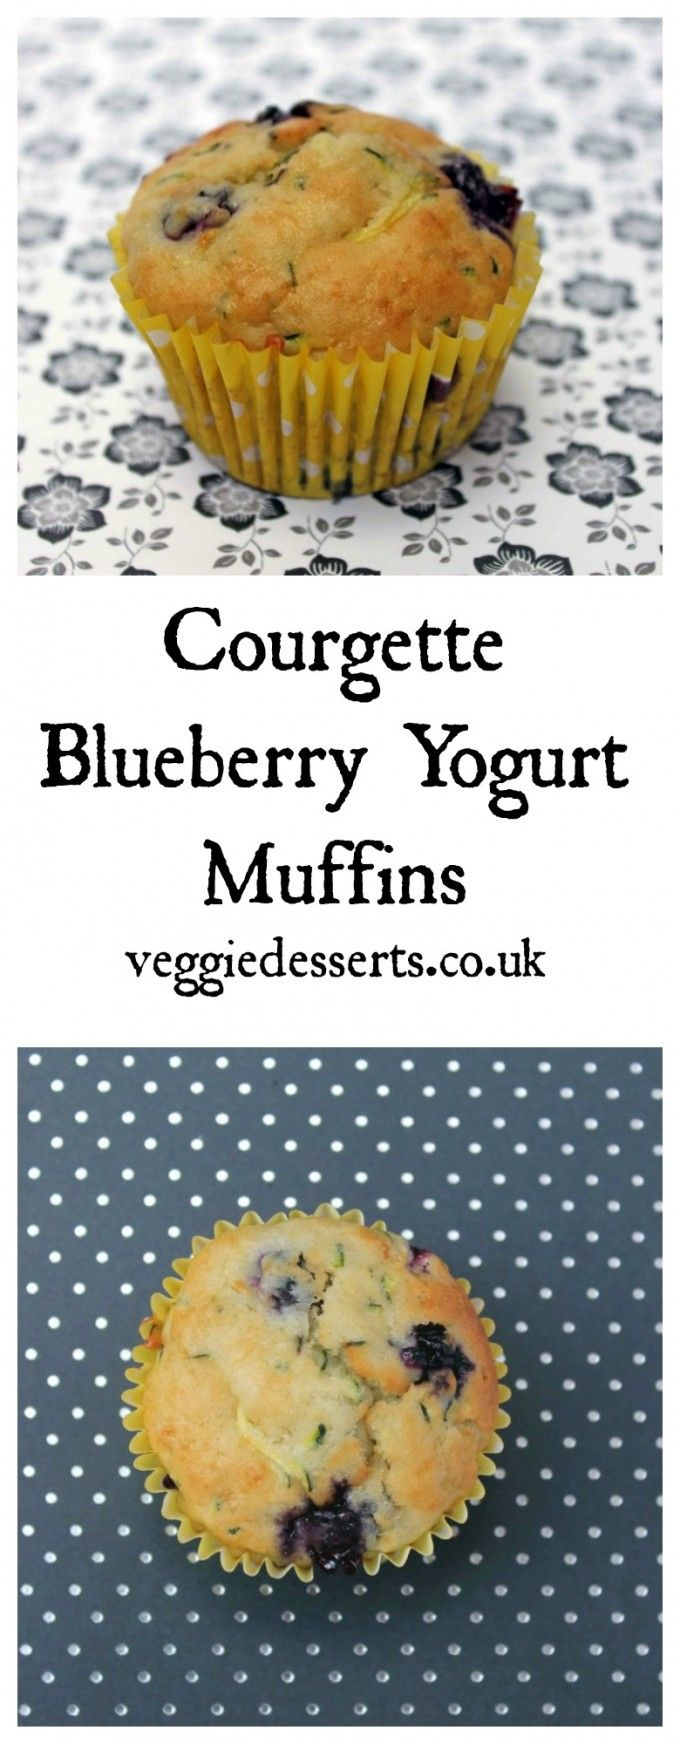 Courgette (zucchini) Blueberry Yogurt Muffins | Veggie Desserts Blog >>> These healthier blueberry yogurt muffins are a lighter version of the classic, plus they're full of courgettes/zucchini.  veggiedesserts.co.uk